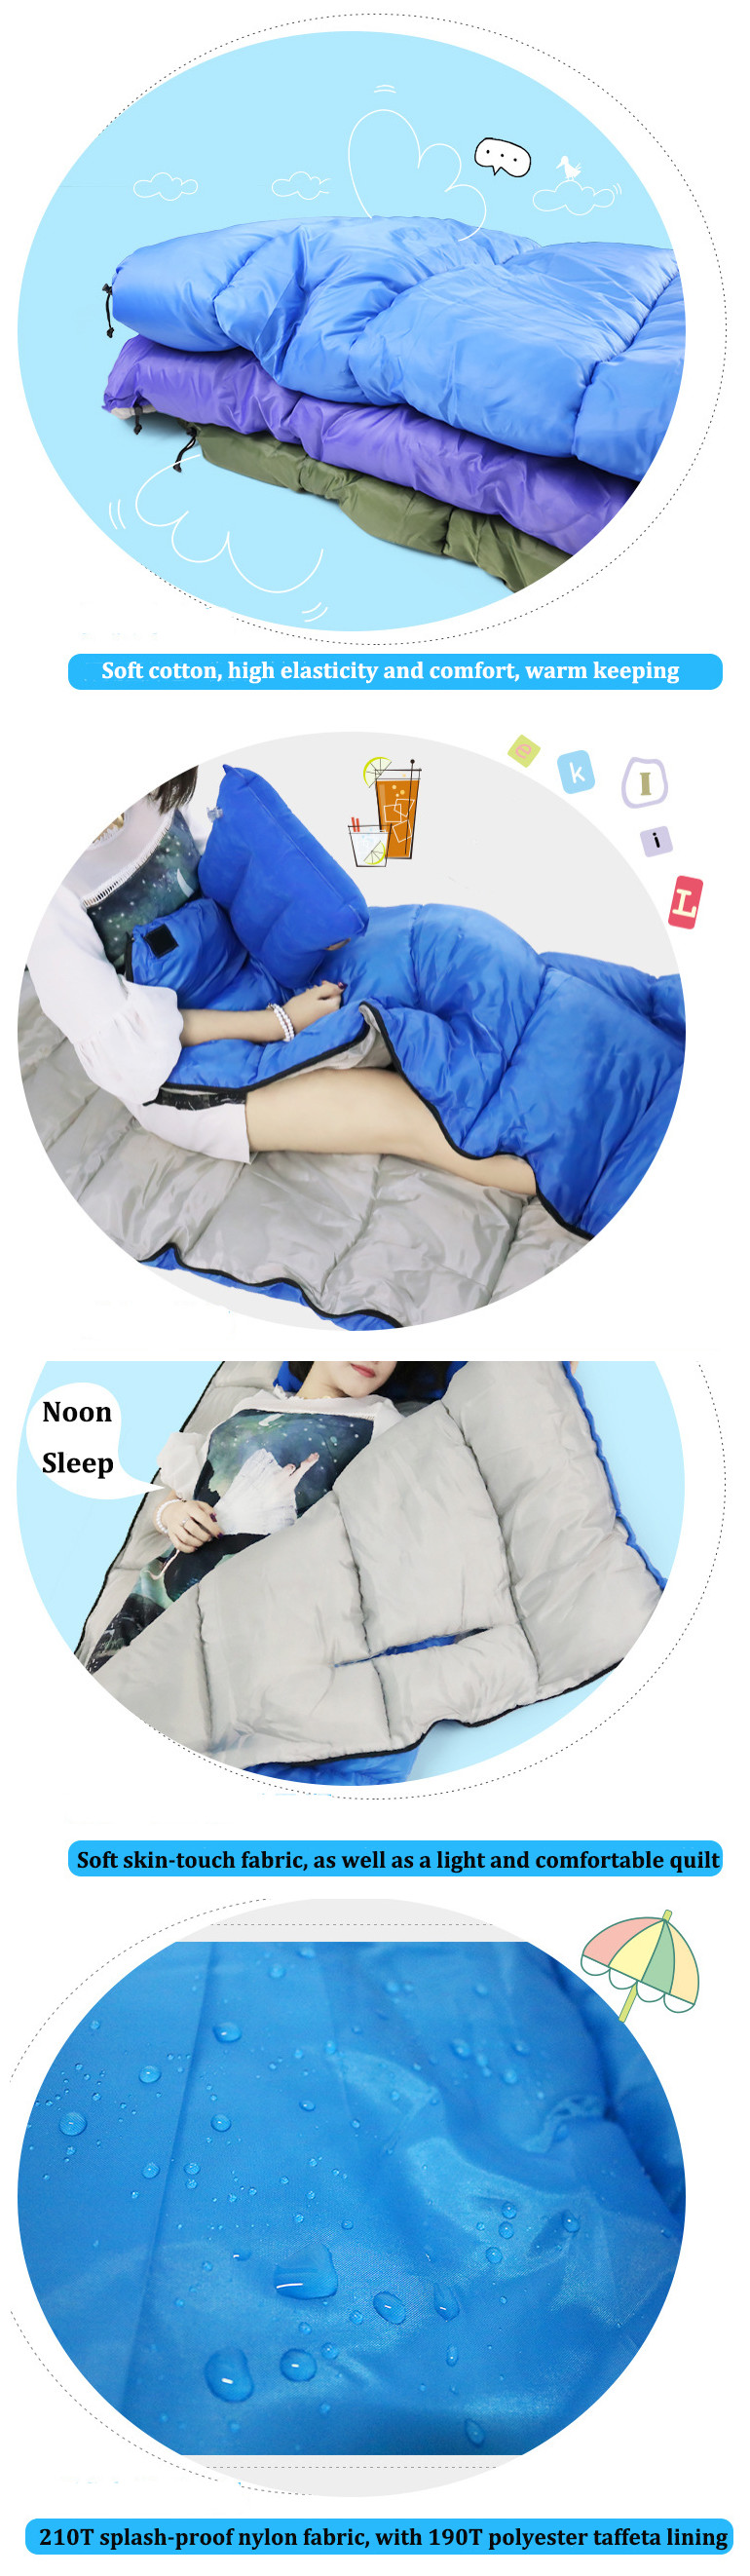 Outdoor Camping Sleeping Bag Adult Cotton Sleep Pad Enveloped Style With Cap